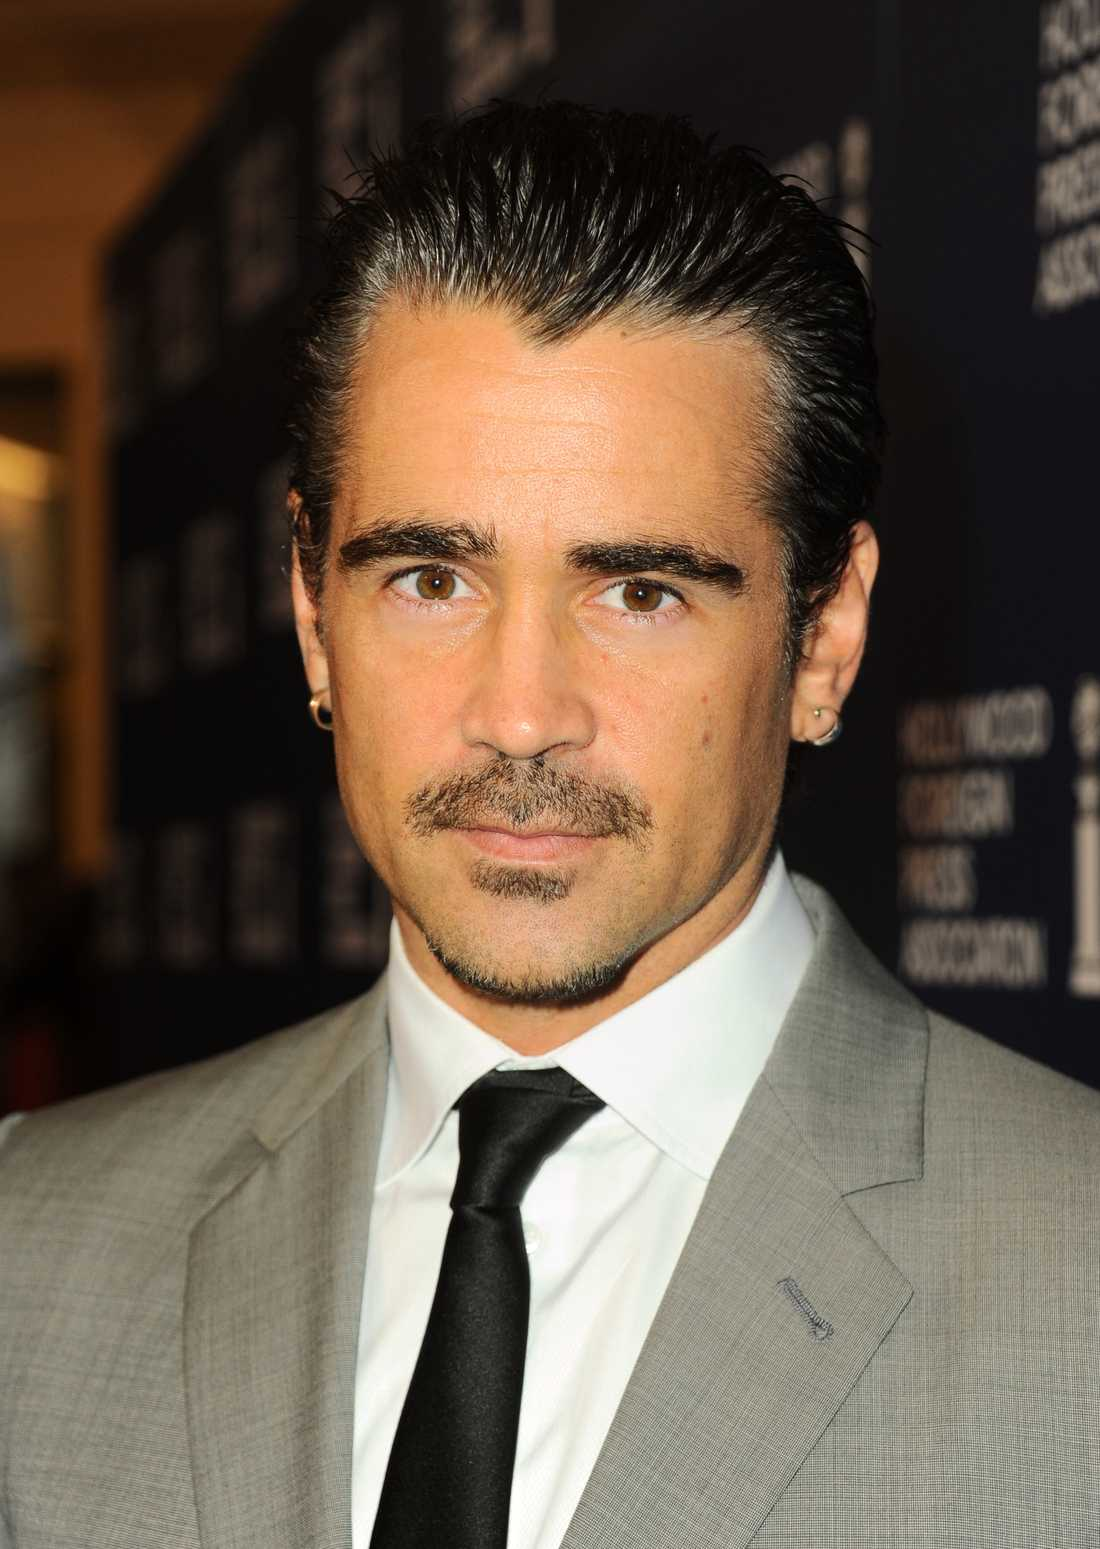 Collin farel sex